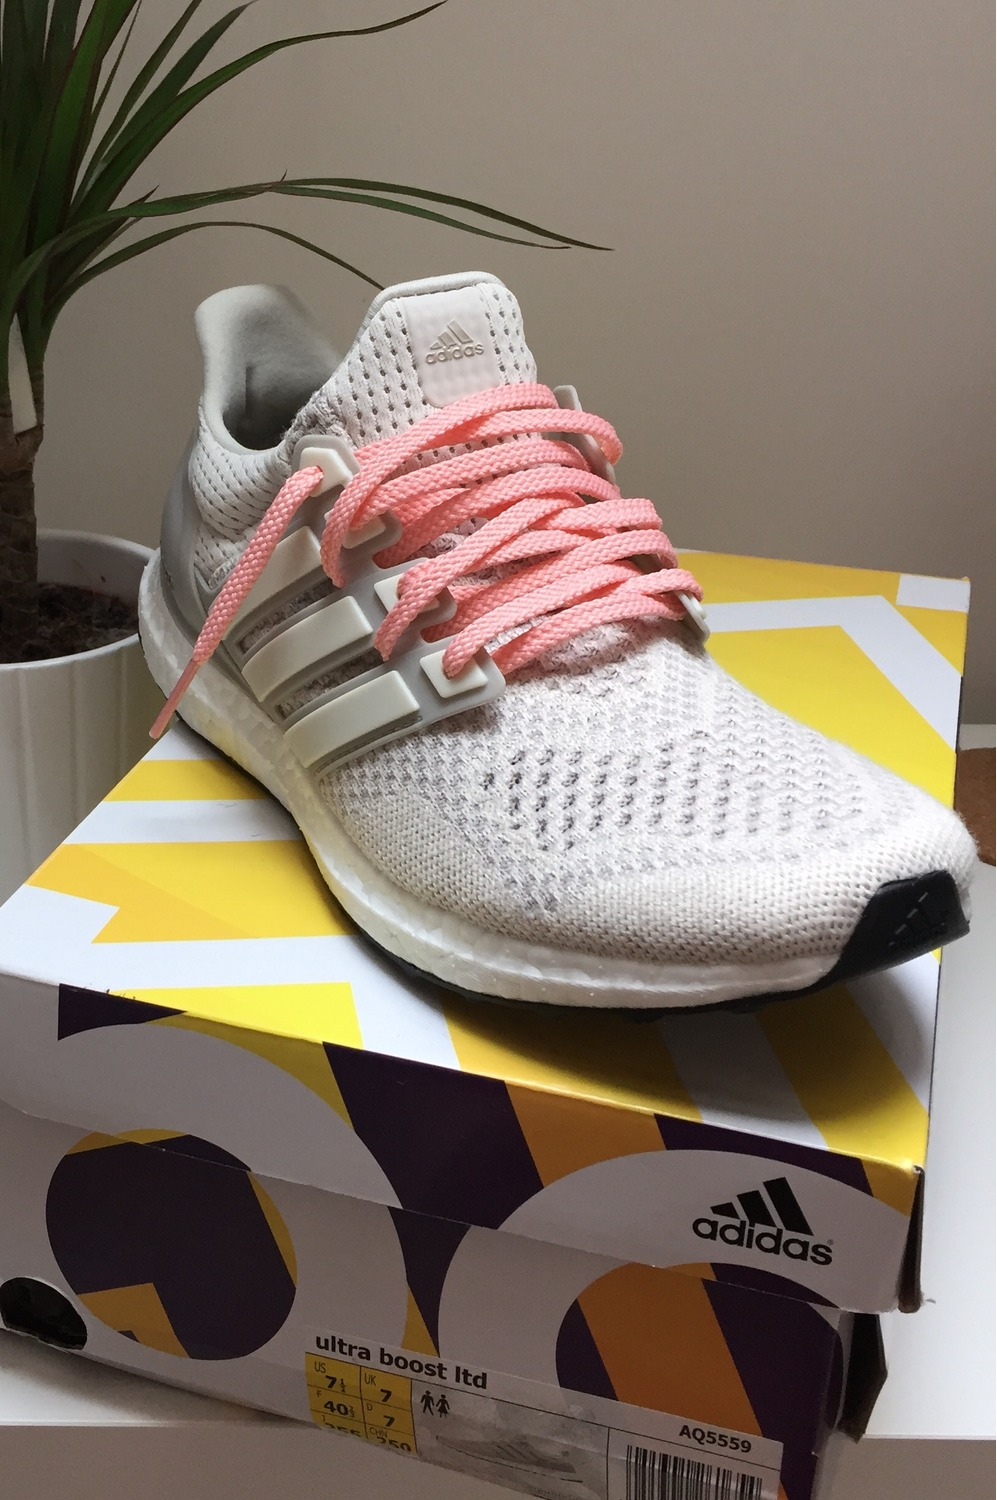 Adidas Ultra Boost White Cream